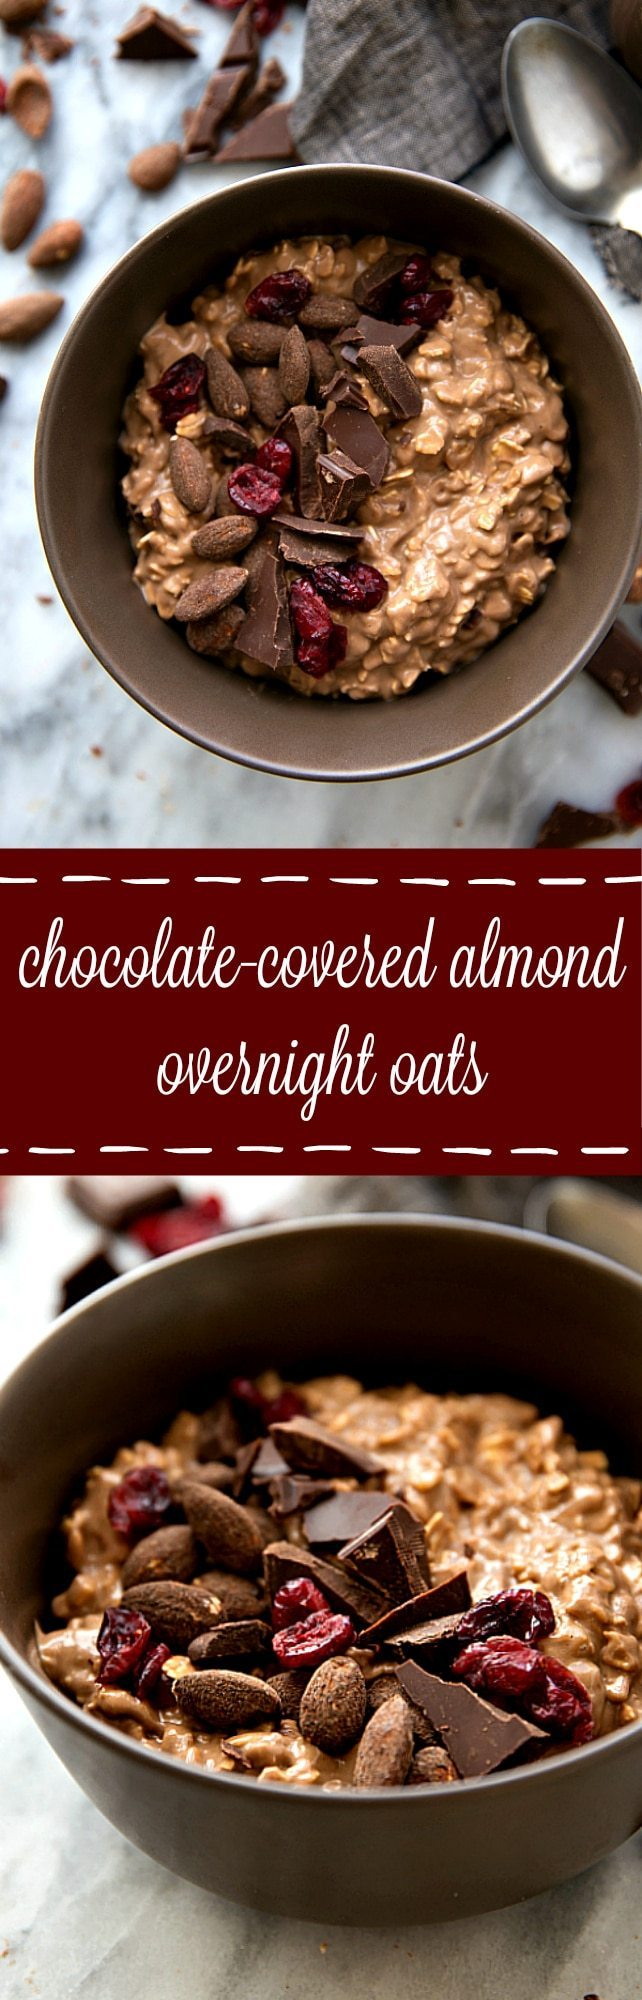 Overnight oatmeal flavored to taste like chocolate-covered almonds. Add in some dried cranberries and enjoy a delicious, quick,&easyseasonal breakfast!